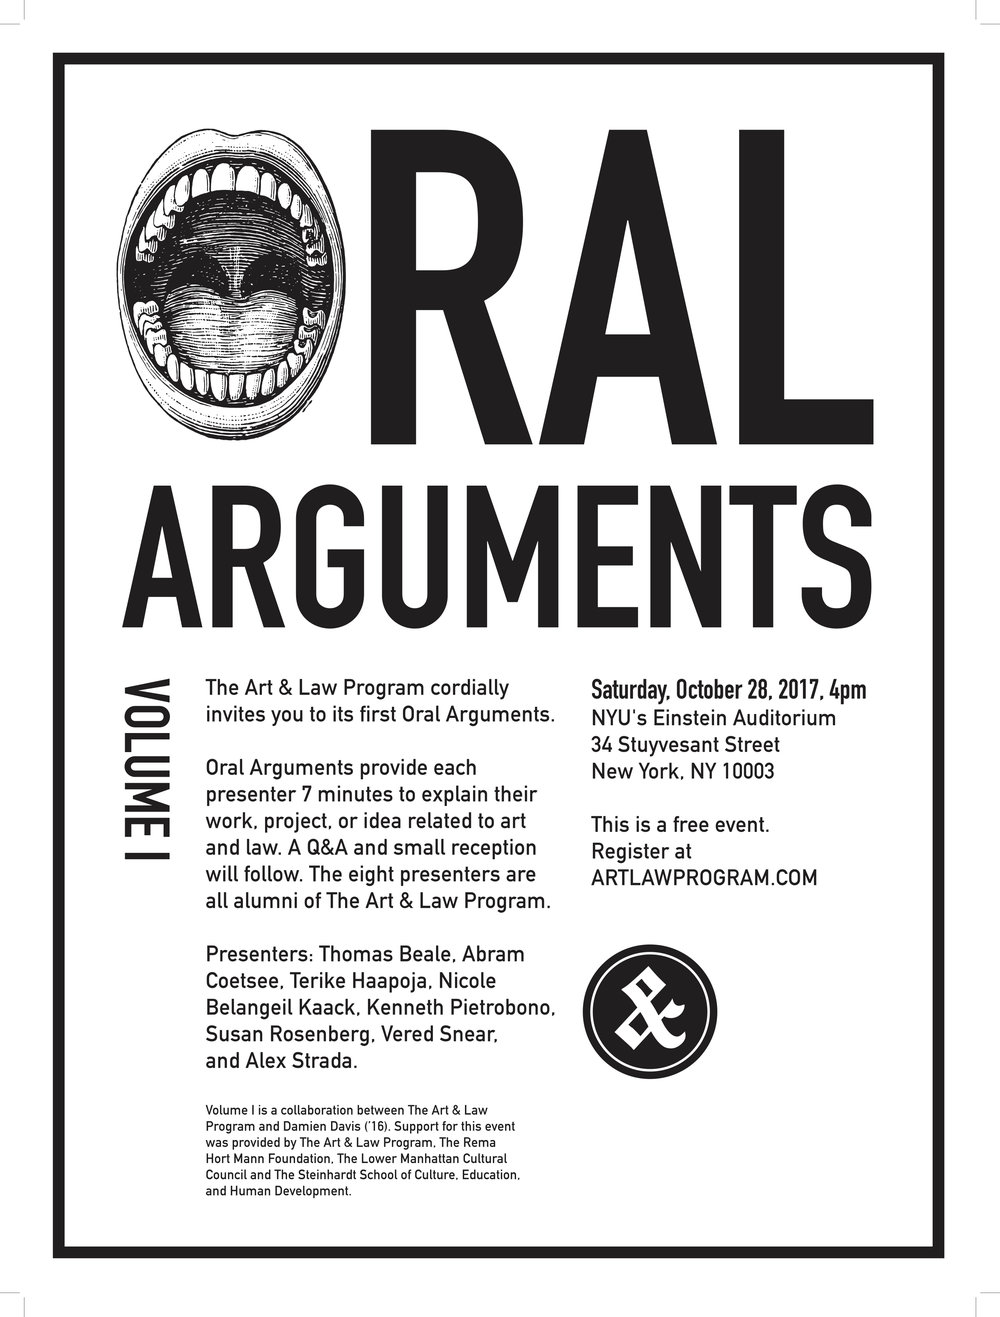 art_law_oral_arguments_poster_3_white.jpg